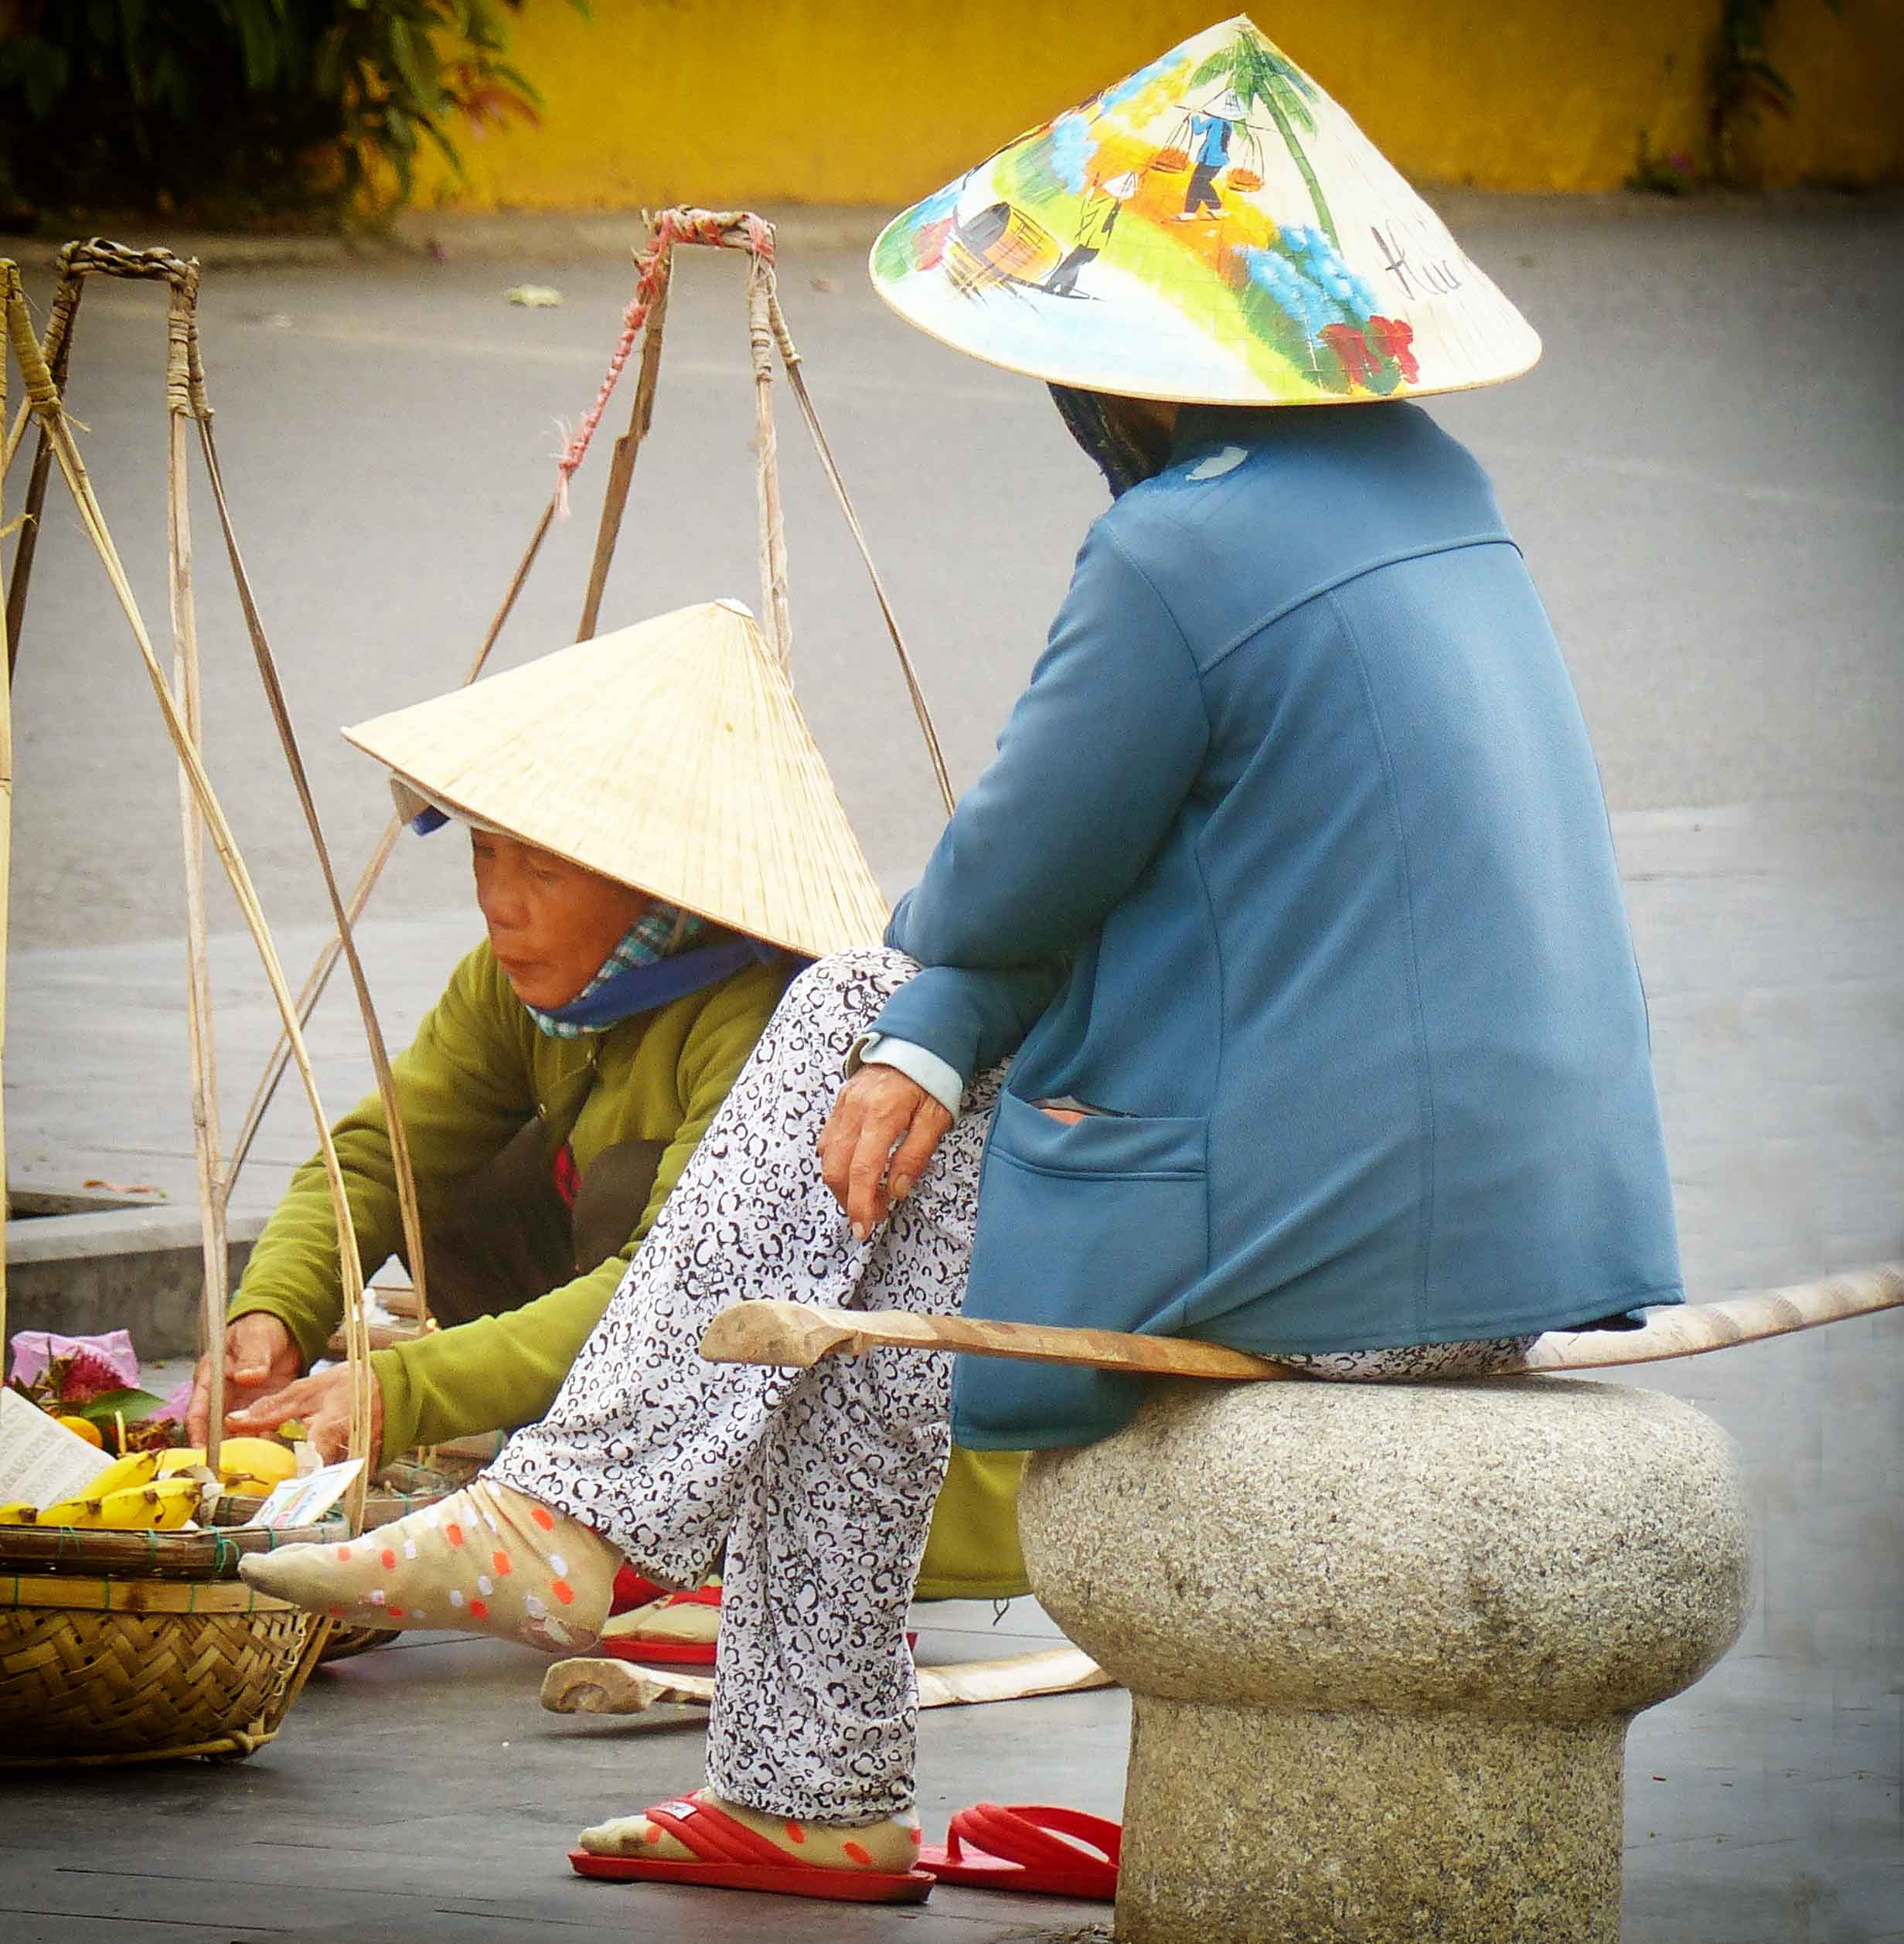 Two ladies in conical hats with traditional baskets on yokes